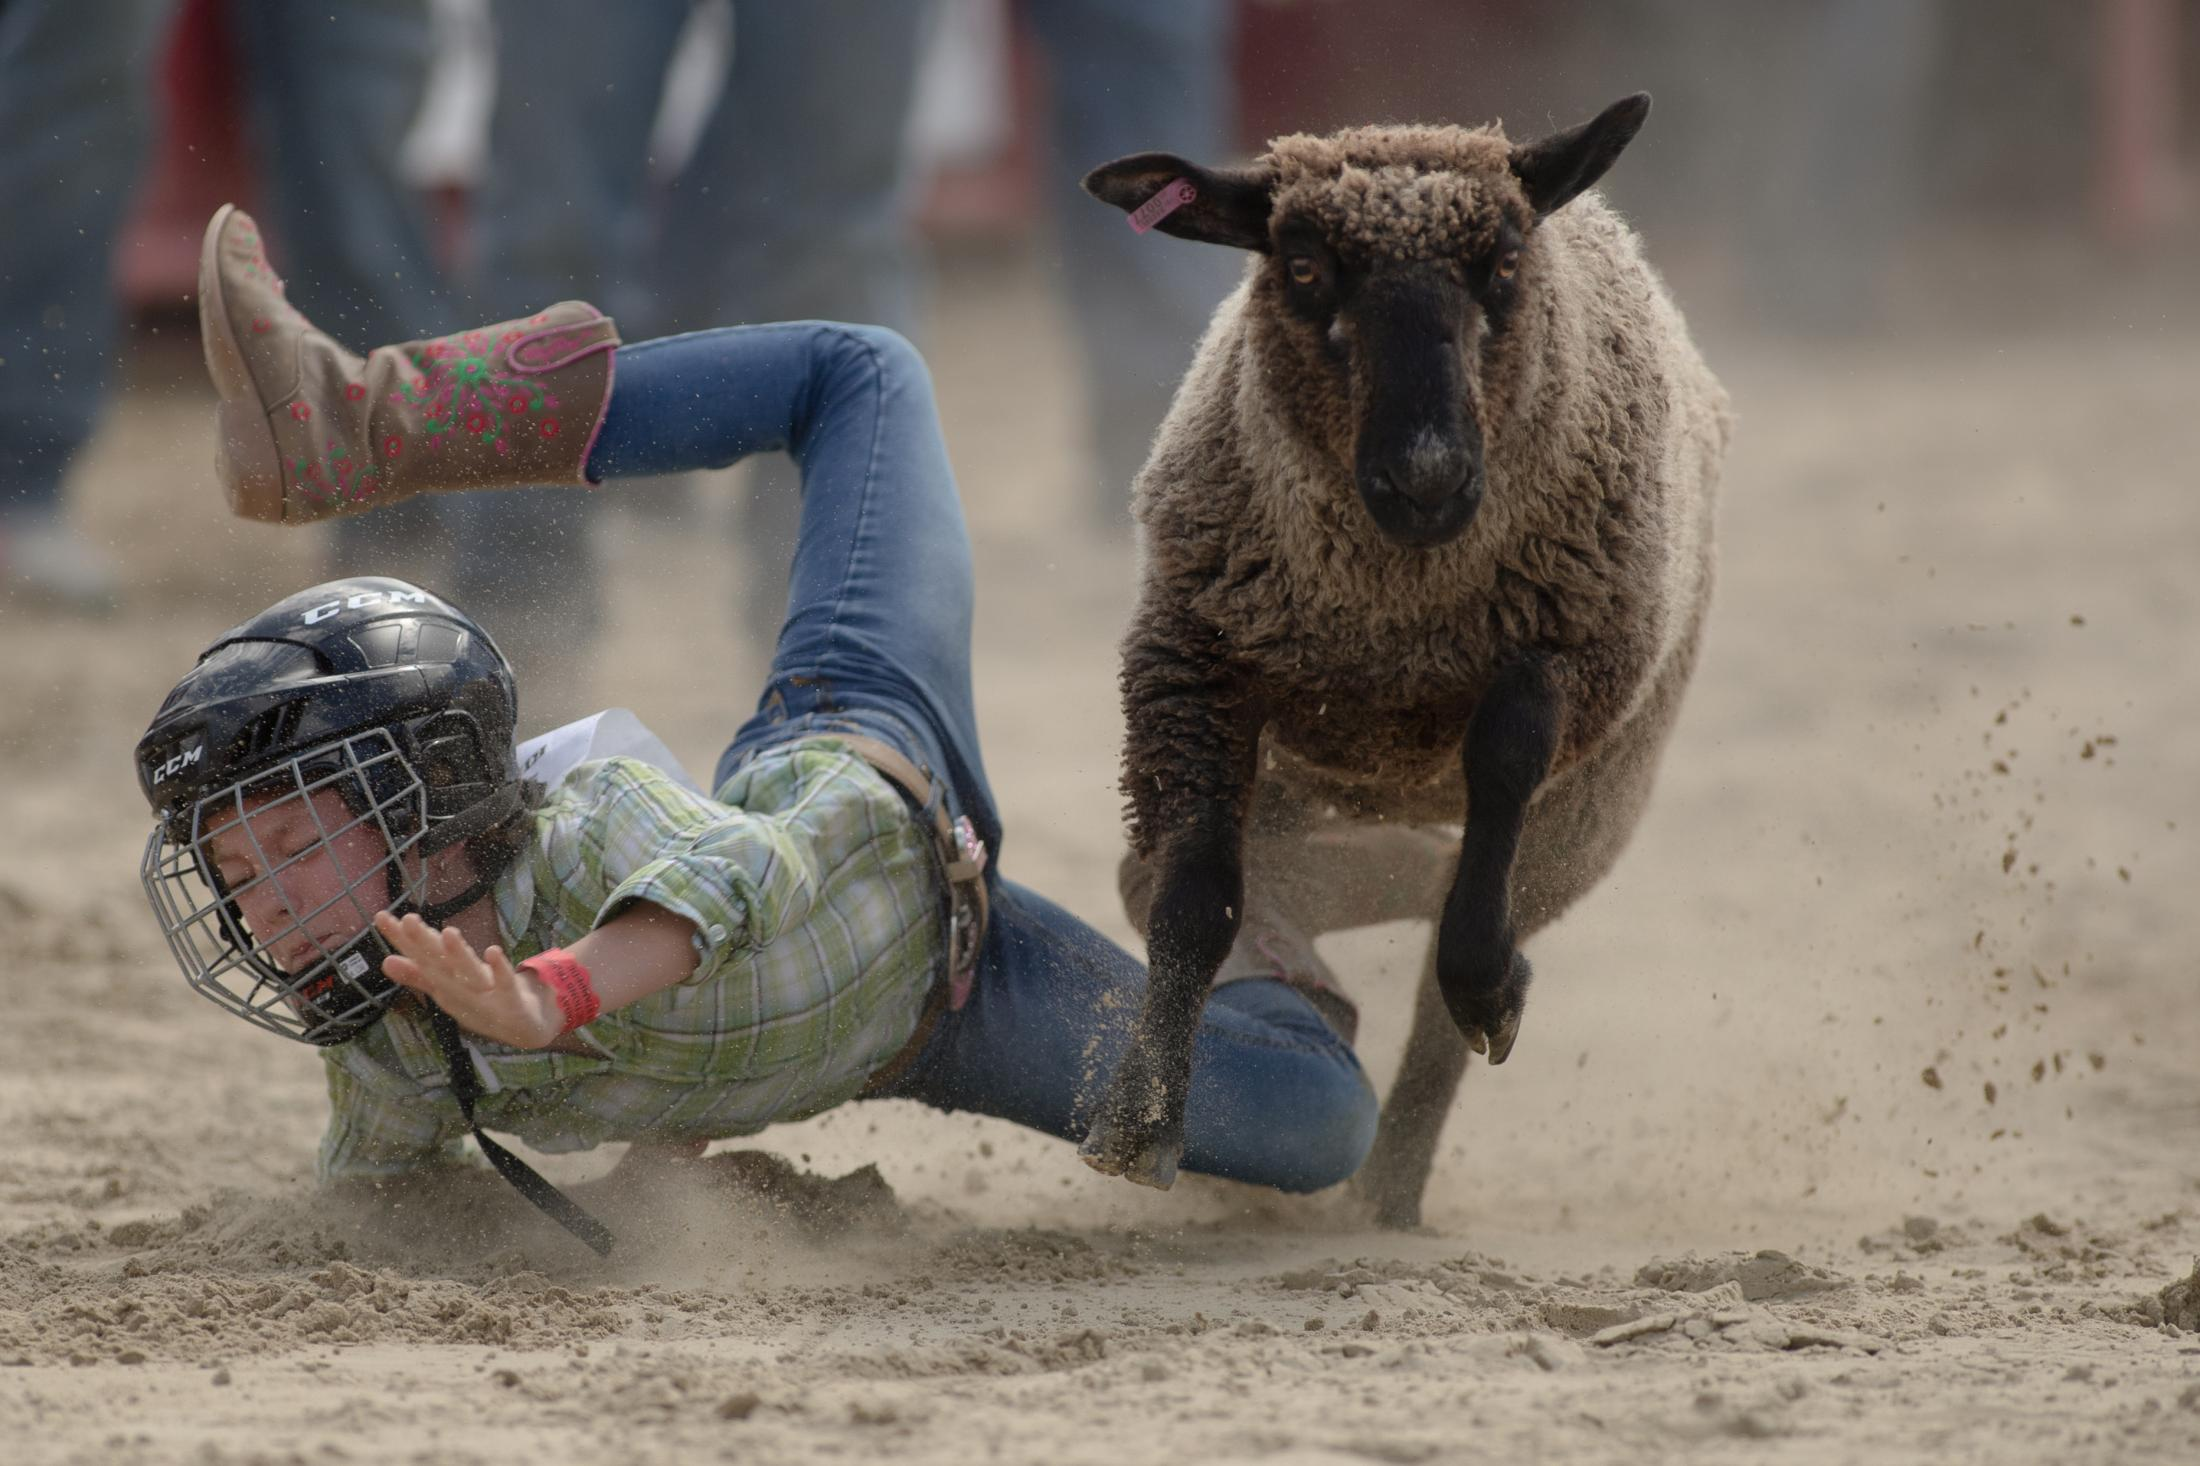 Brooke Stokes from Southbury, CT gets thrown off a sheep but takes first place in the youth division at the mutton busting competition at the Goshen Stampede in Goshen, CT on June 15, 2019.